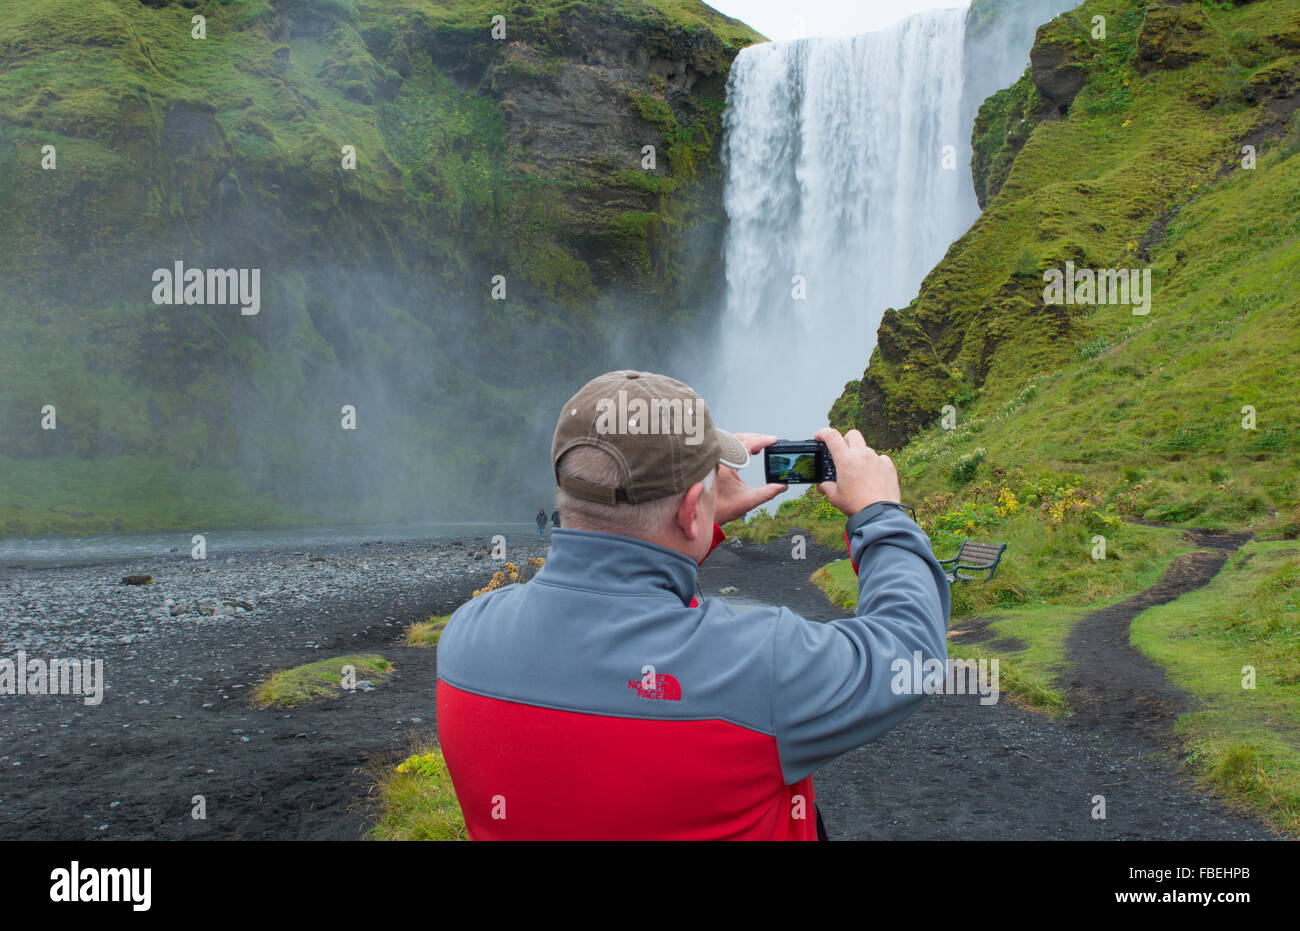 Iceland Skogafoss Waterfall famous falls in South Iceland at the Skoga River with tourists taking photos - Stock Image